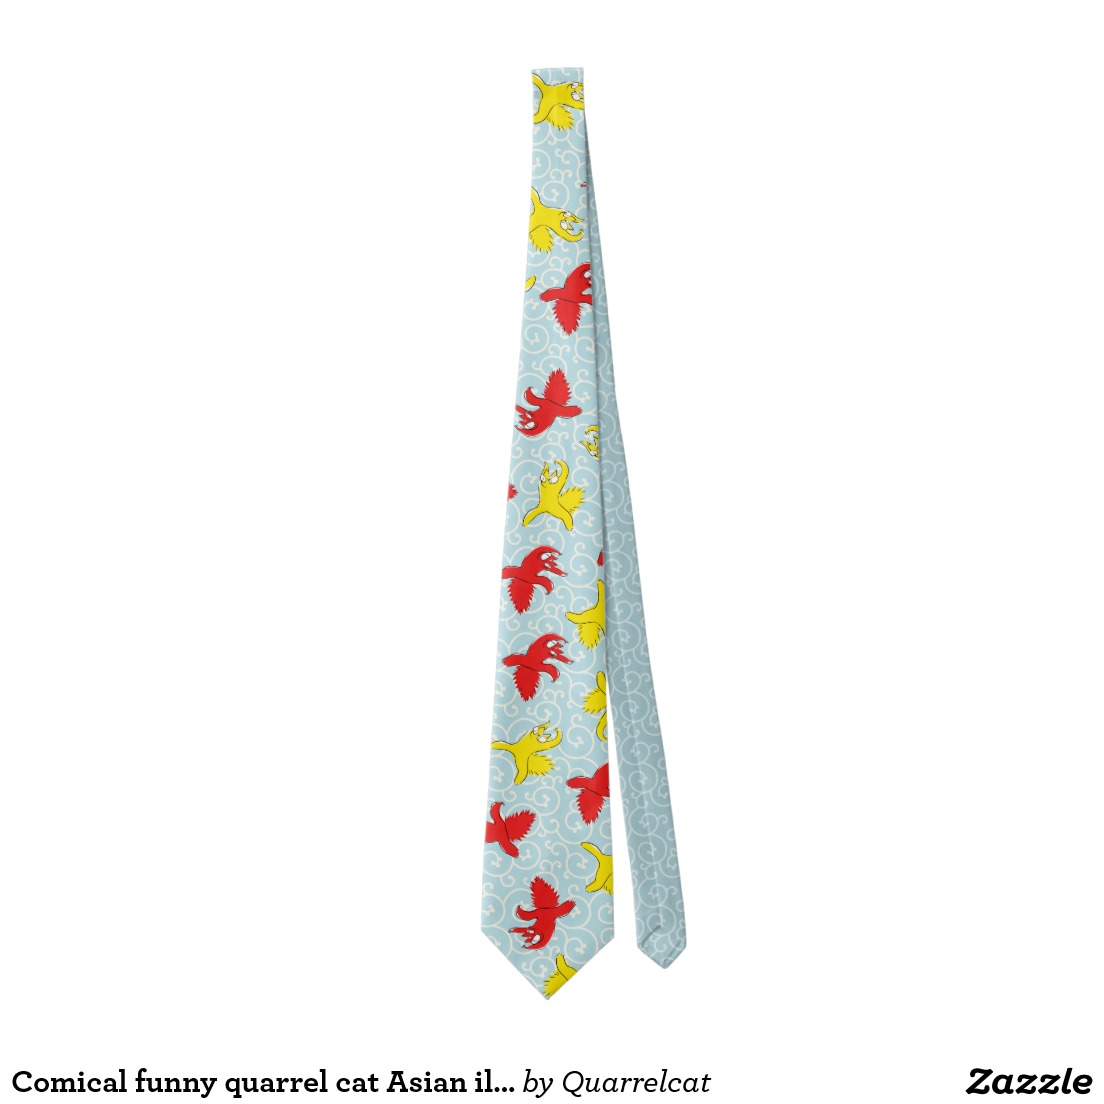 Comical funny quarrel cat Asian illustration Tie3